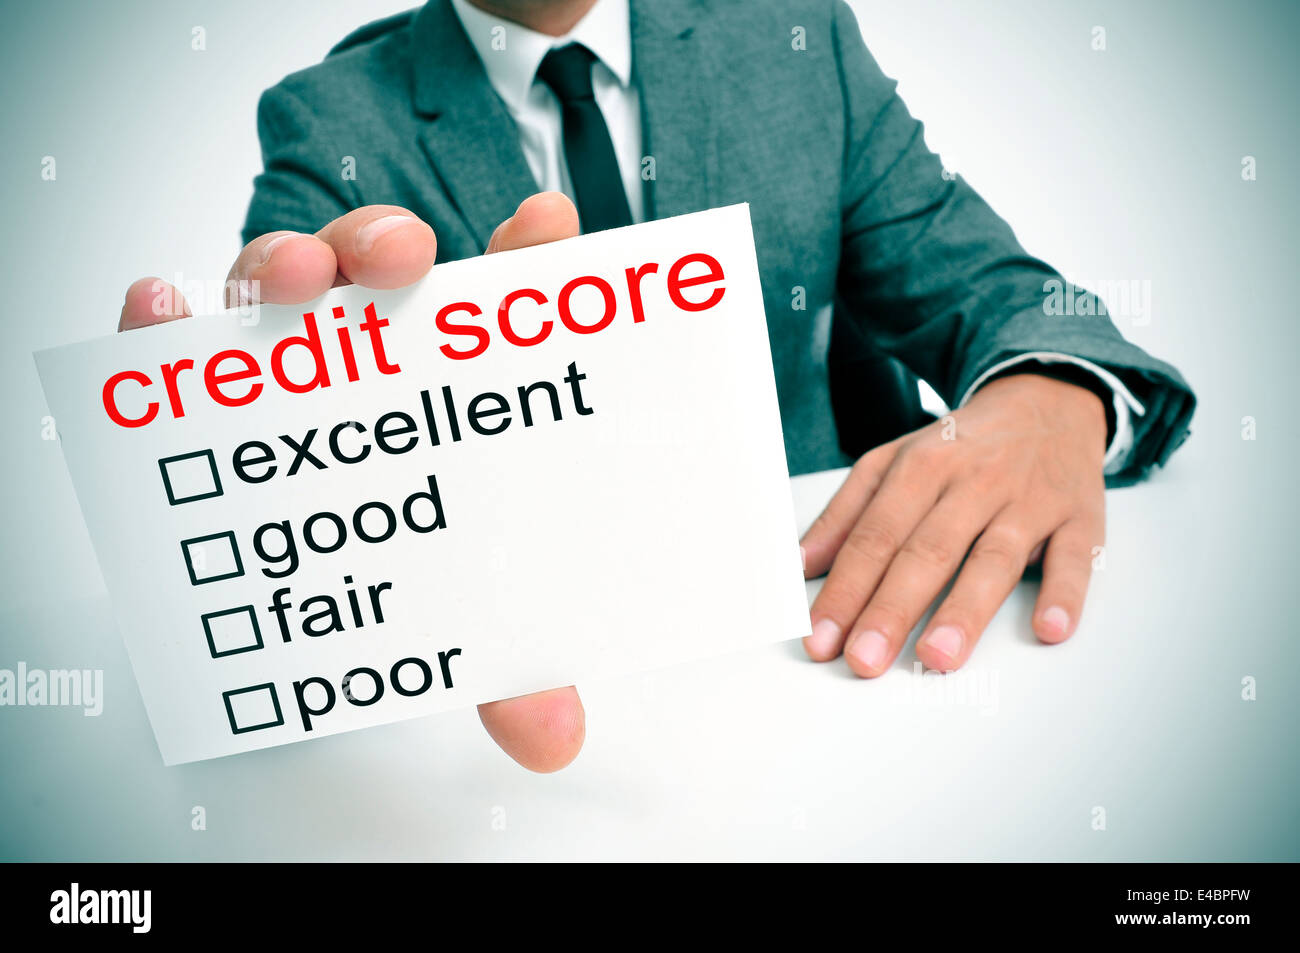 man in suit showing a signboard with the different ranges of the credit score: excellent, good, fair and poor - Stock Image